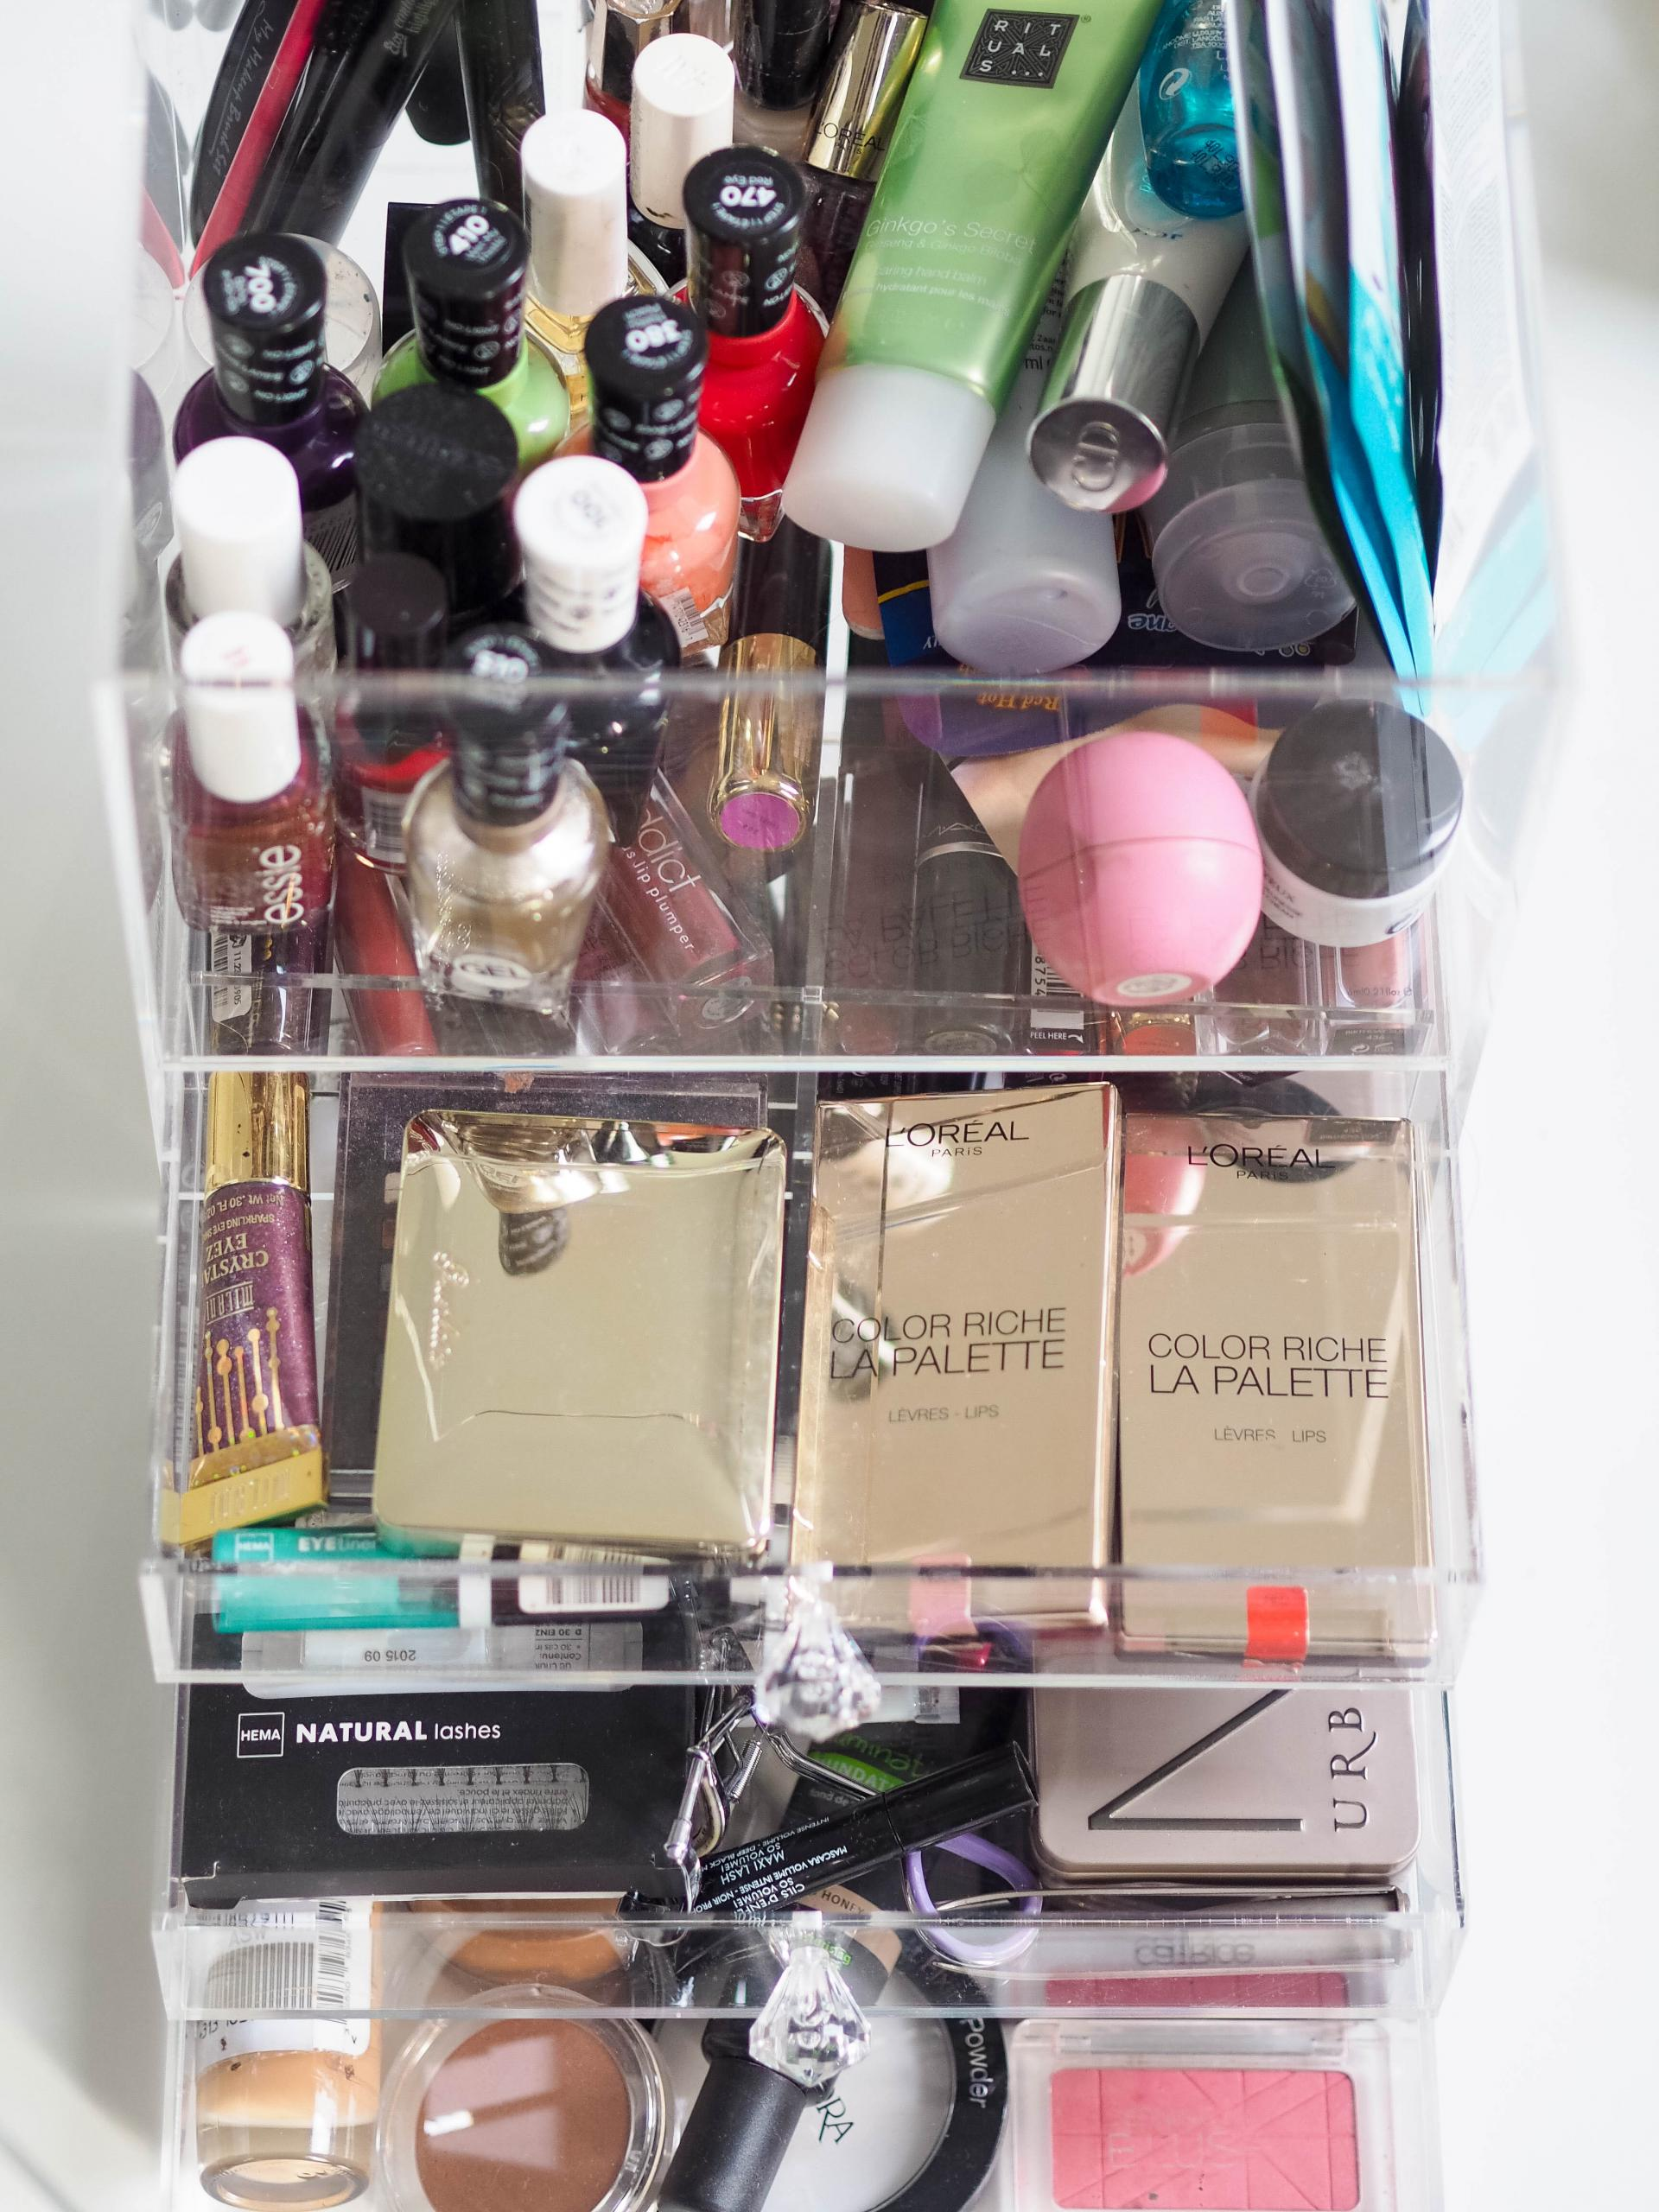 yosmo-make-up-organizer-11-van-15